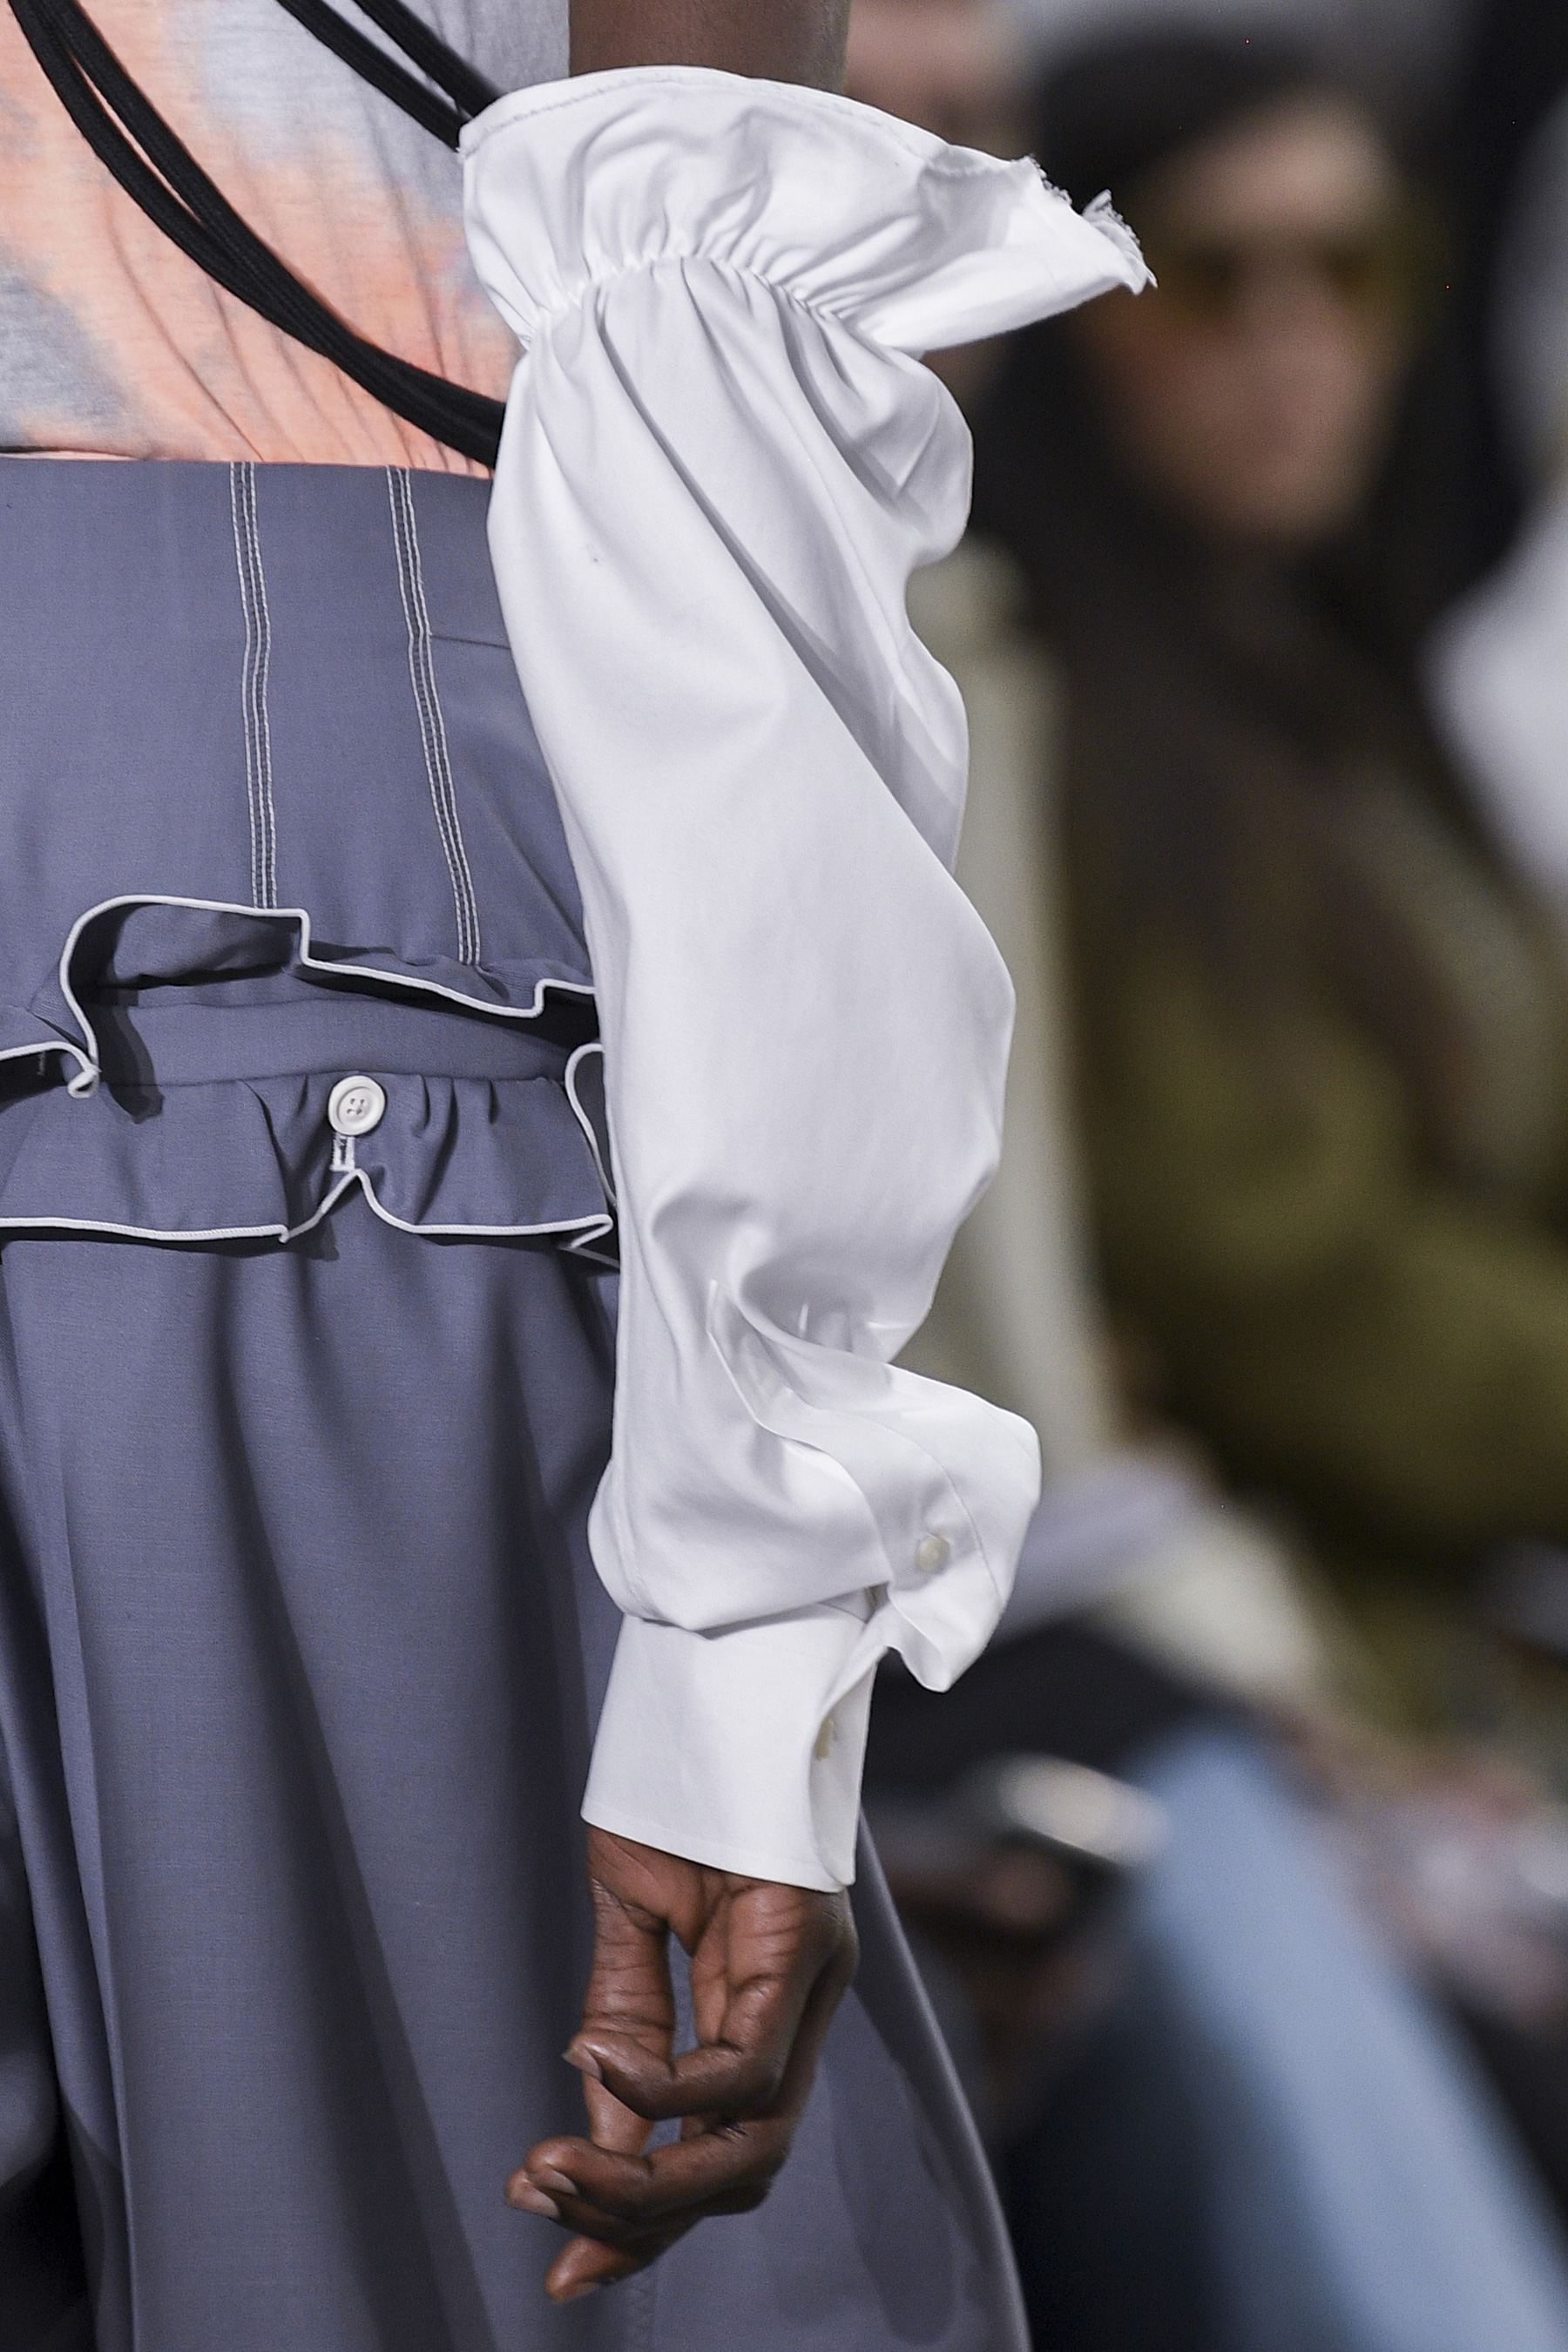 Munn Spring 2020 Men's Fashion Show Details